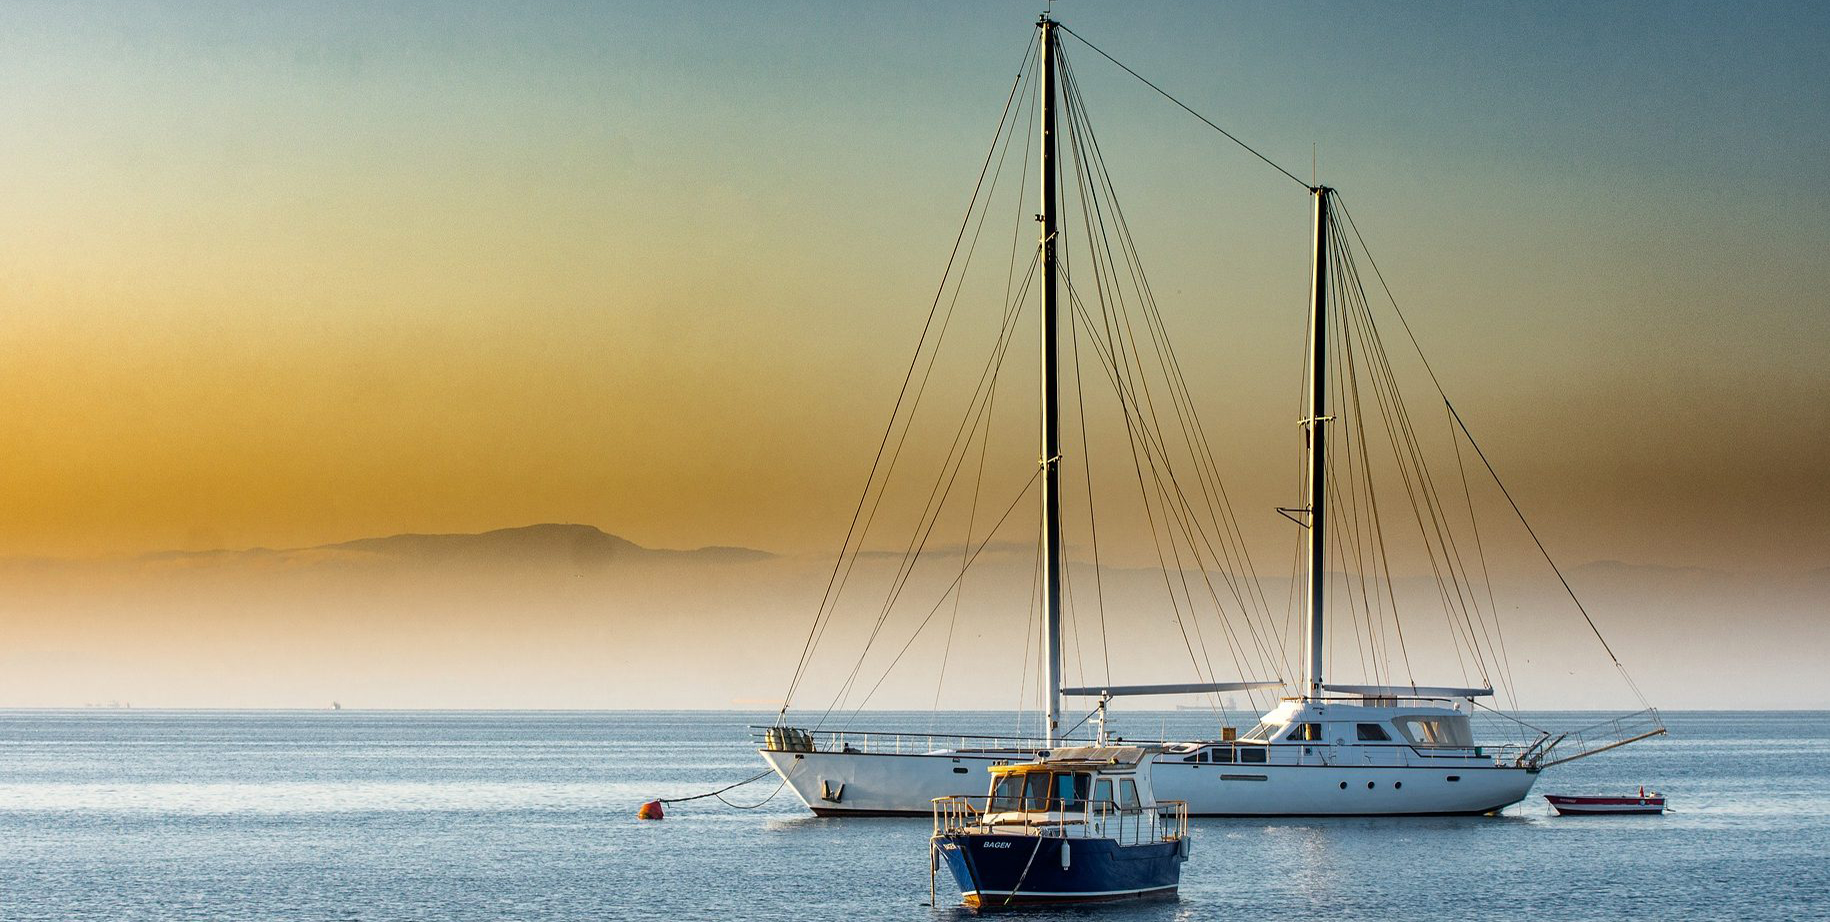 Yacht at anchor & small fishing vessel at anchor on a misty morning at sunrise